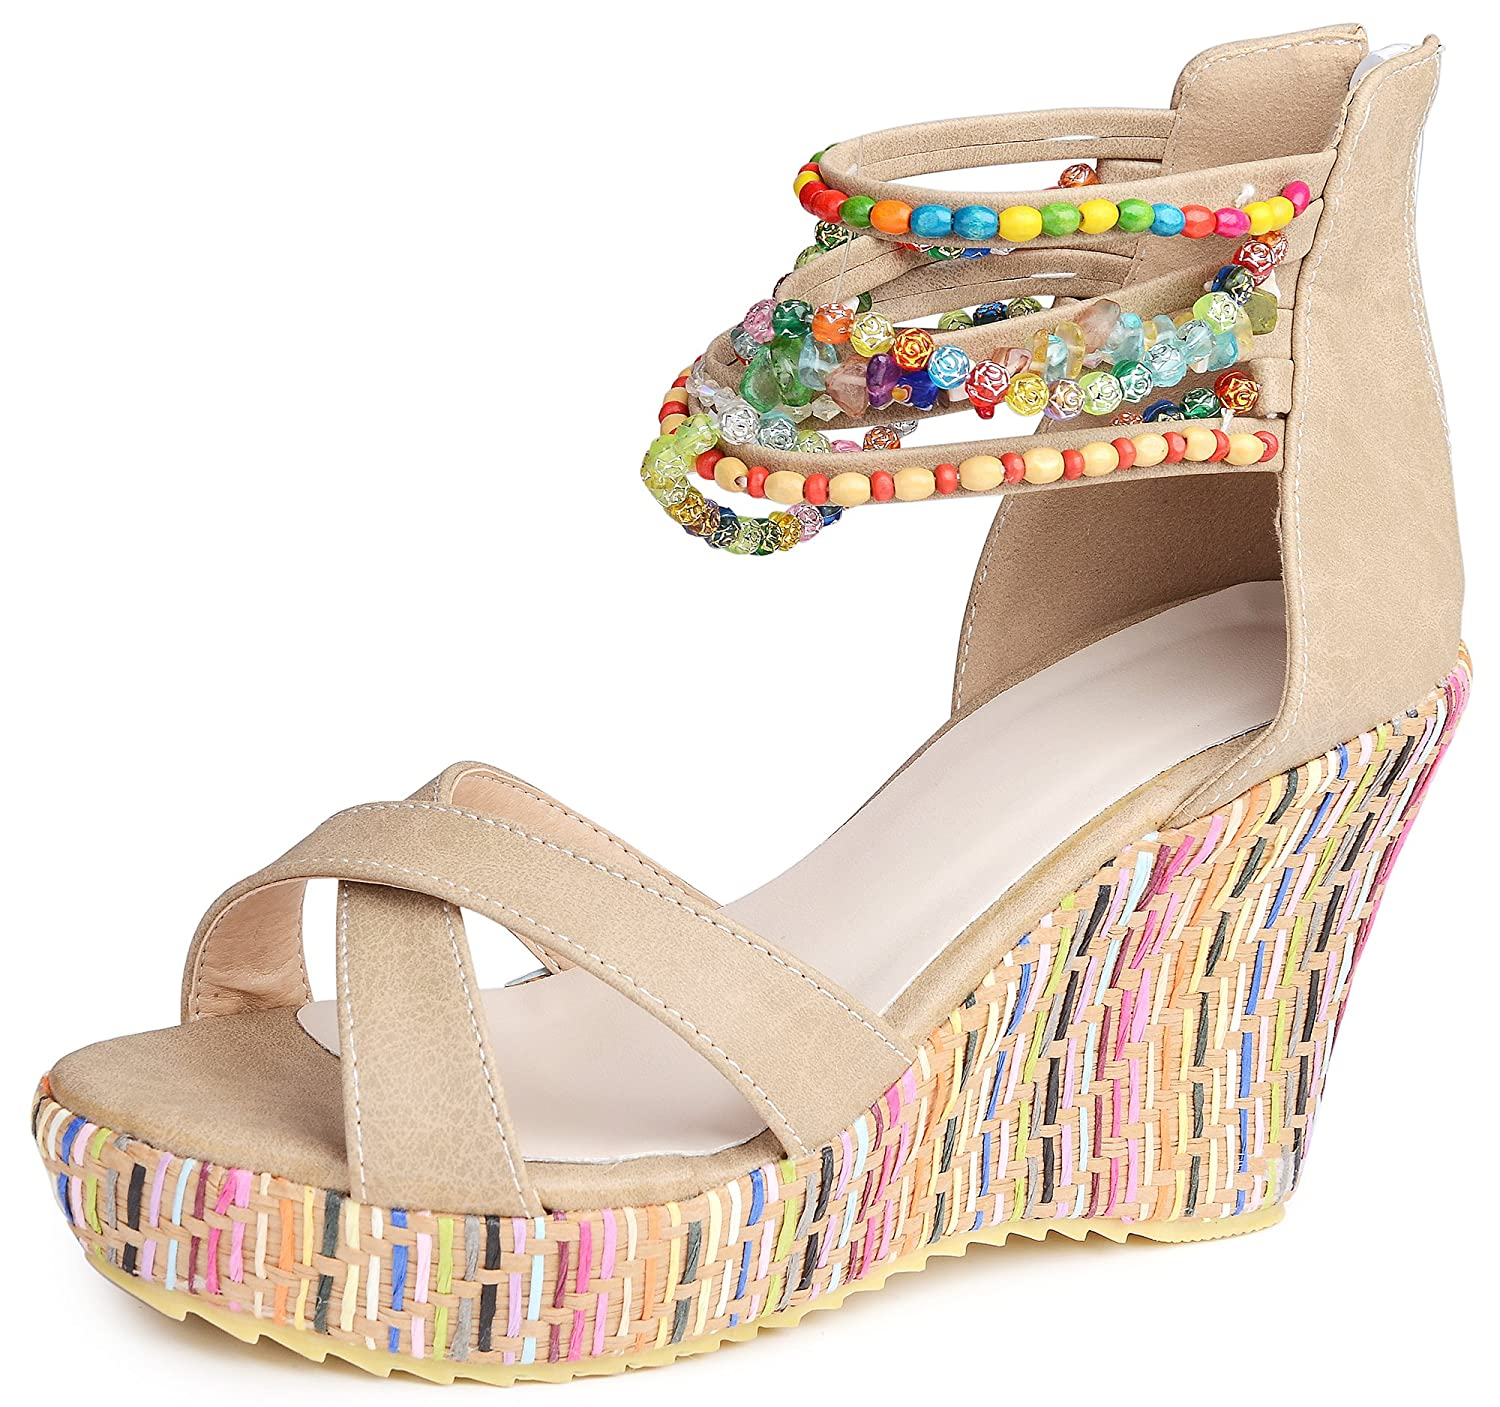 25015a778d54 Catata women bohemian beaded platform wedge pump high heel sandals jpg  1500x1407 Bohemian beading sandals